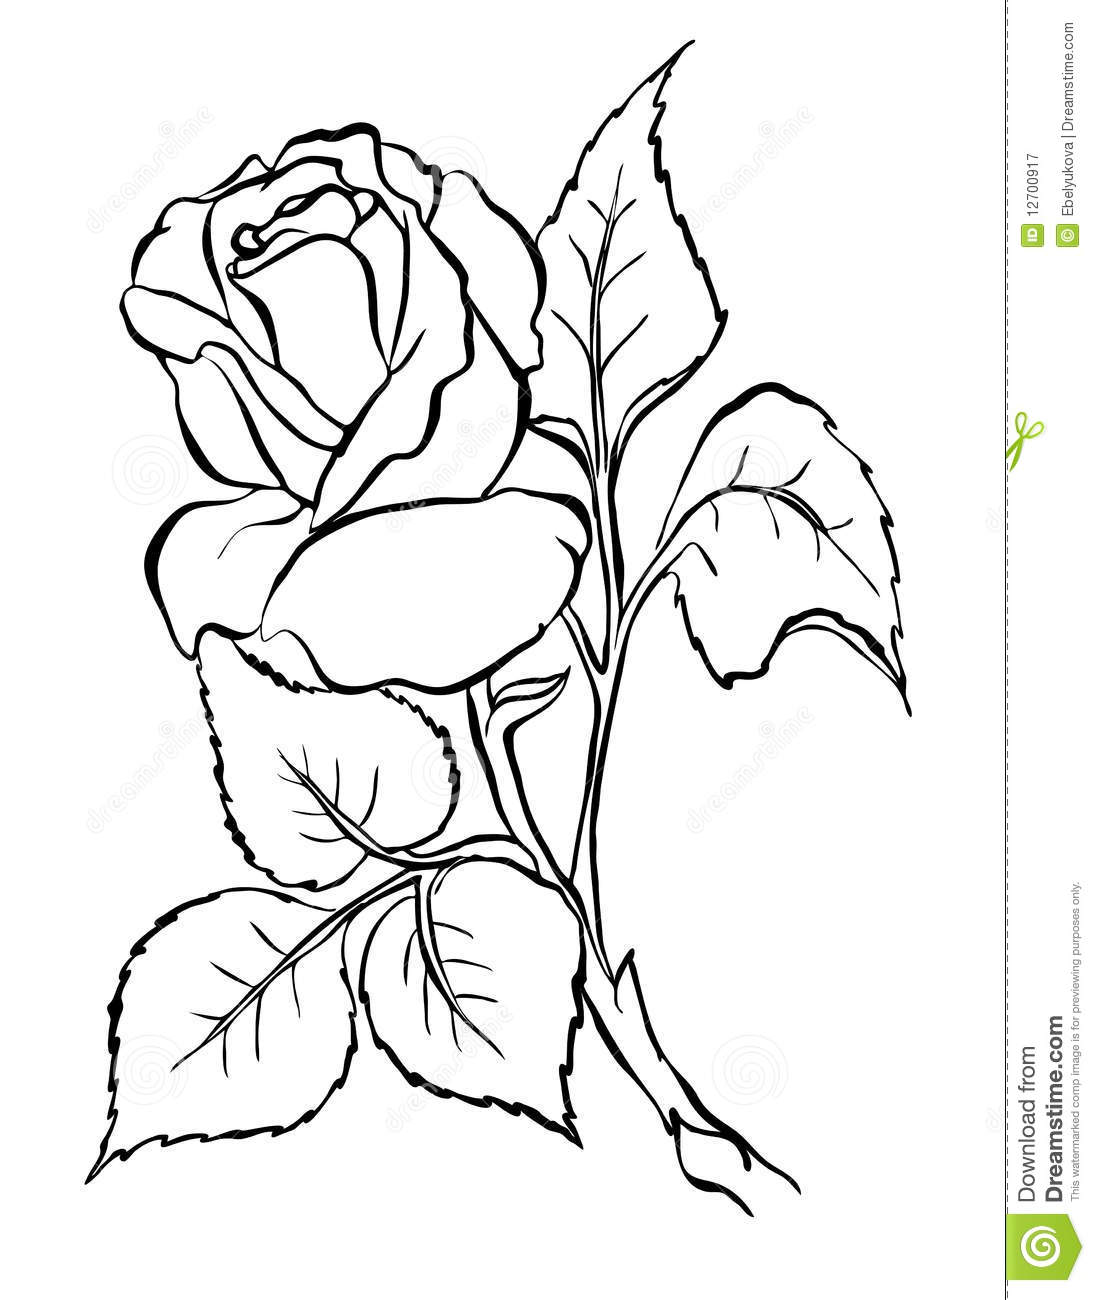 Drawing Lines Freehand : Rose freehand drawing stock vector illustration of